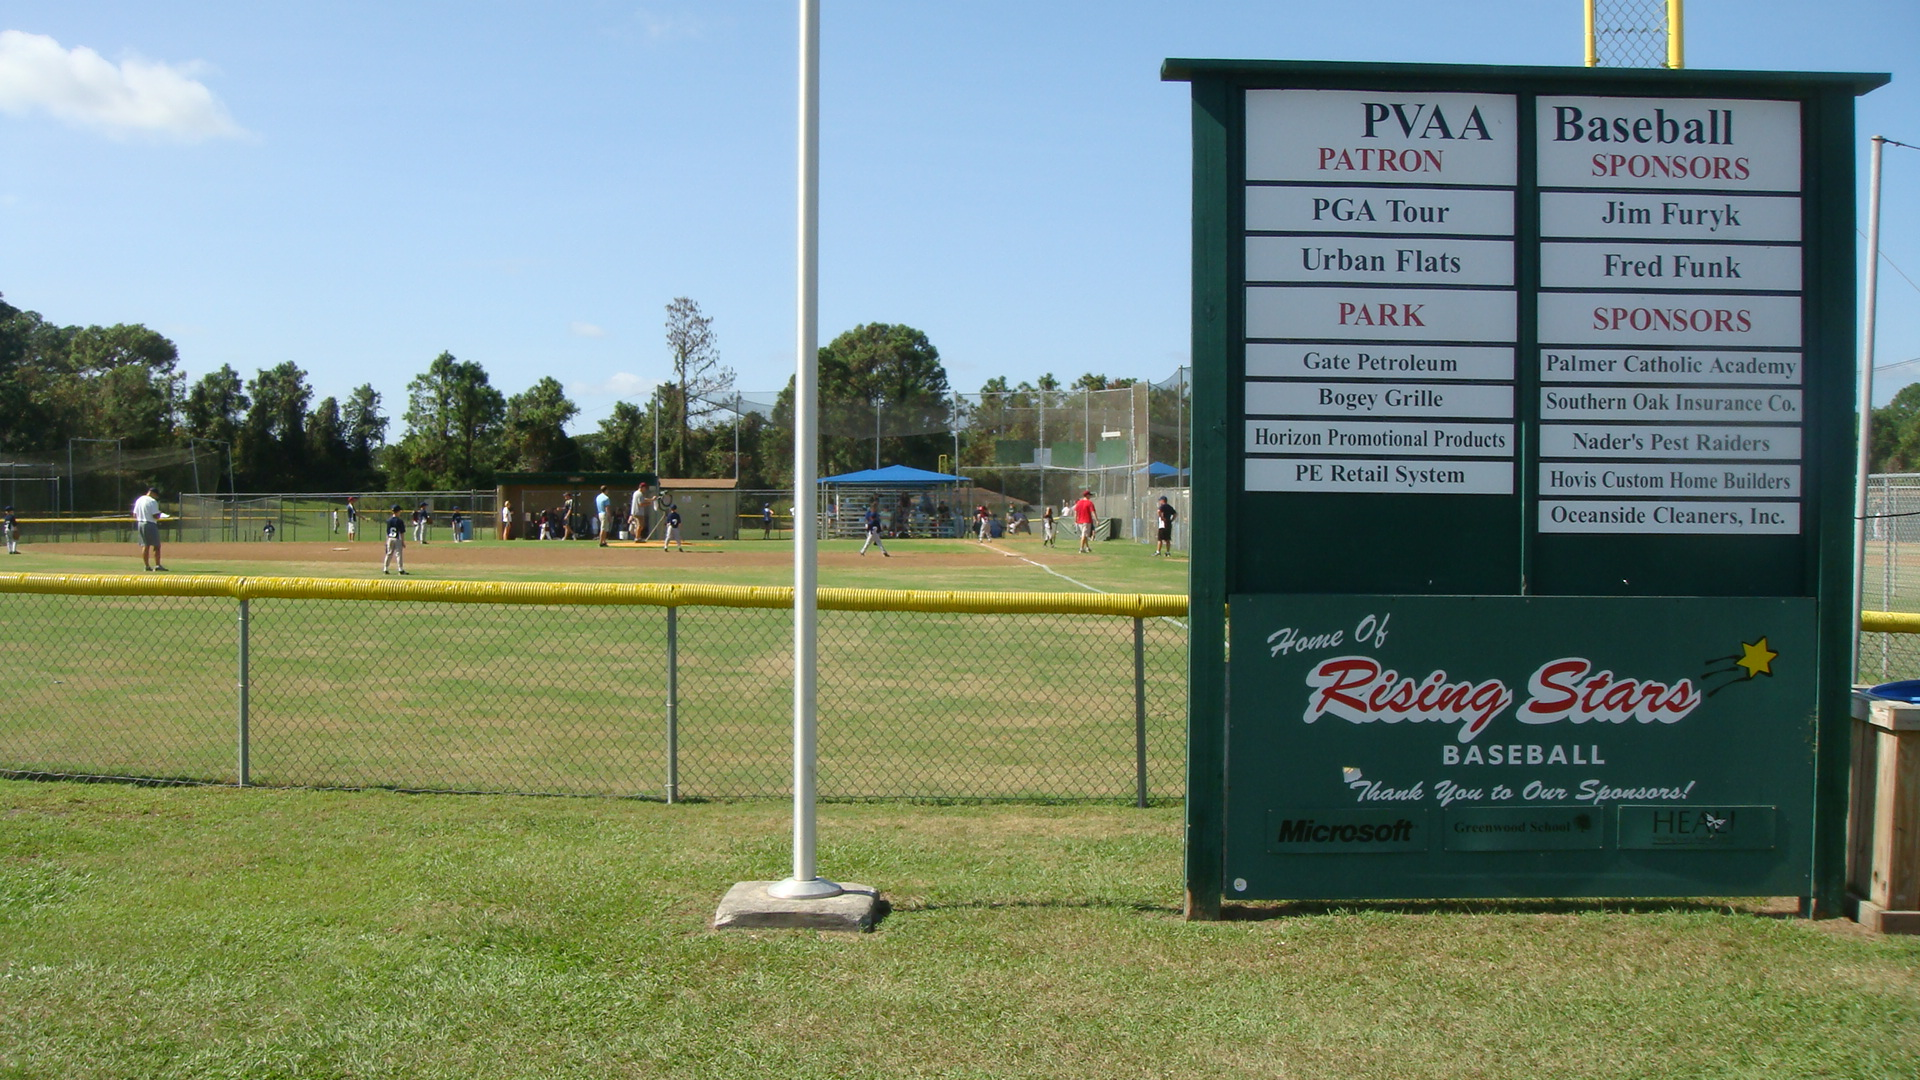 Photo of Cornerstone Park showing the baseball field with people playing ball and signage showing the park sponsors